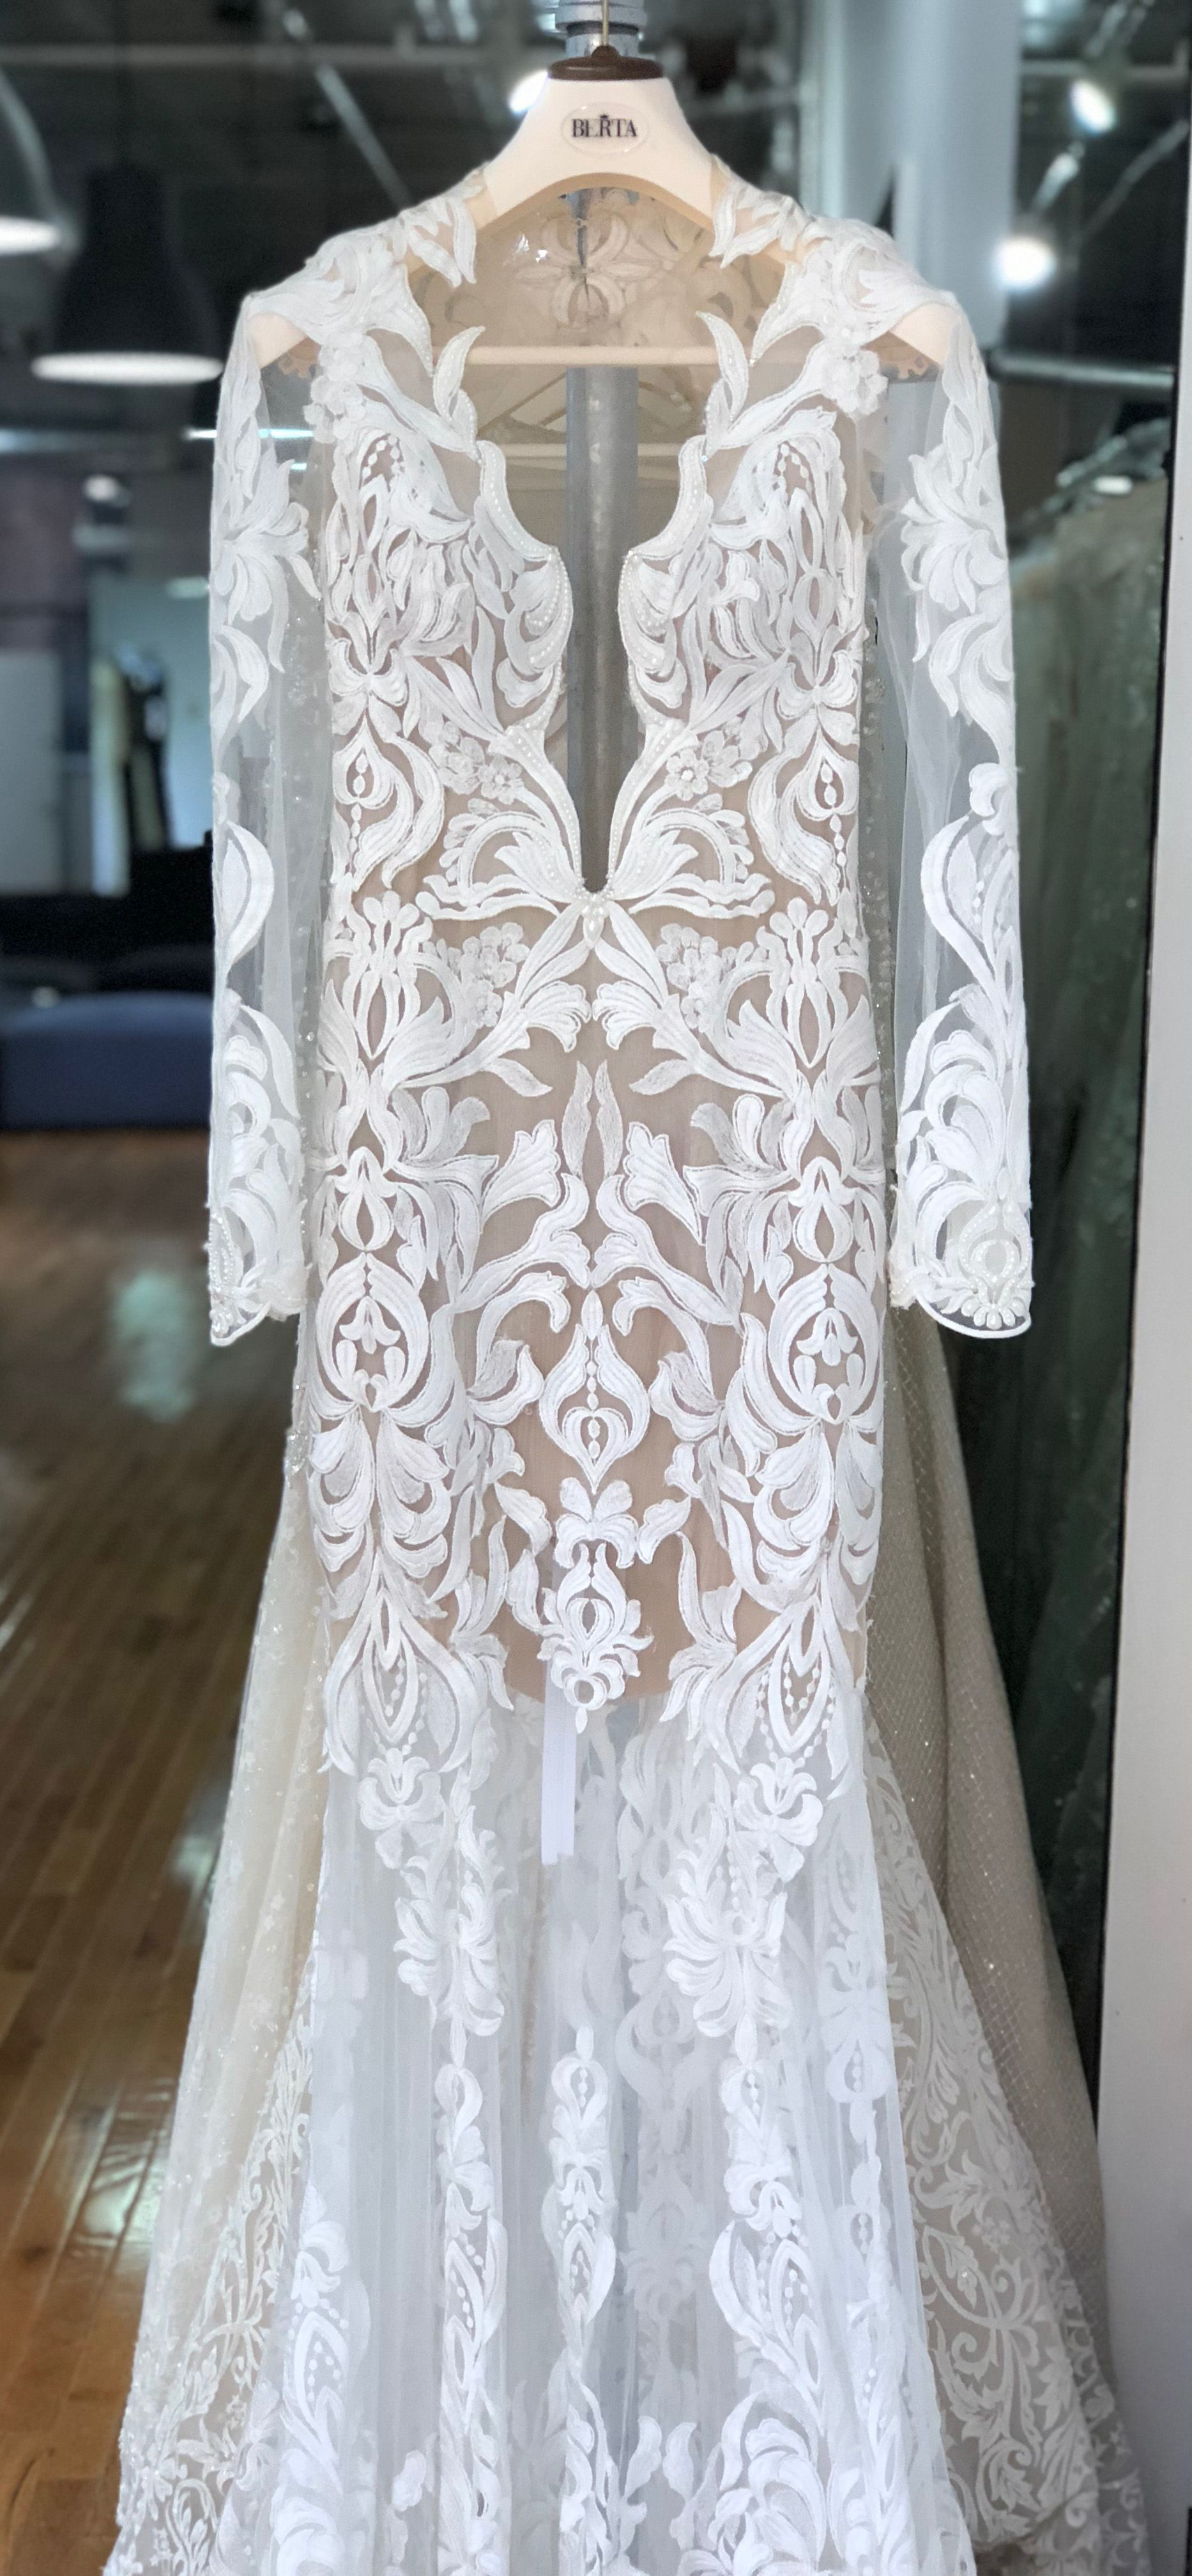 Berta Style 15 30 Available At Our Nyc Store For A Special Off The